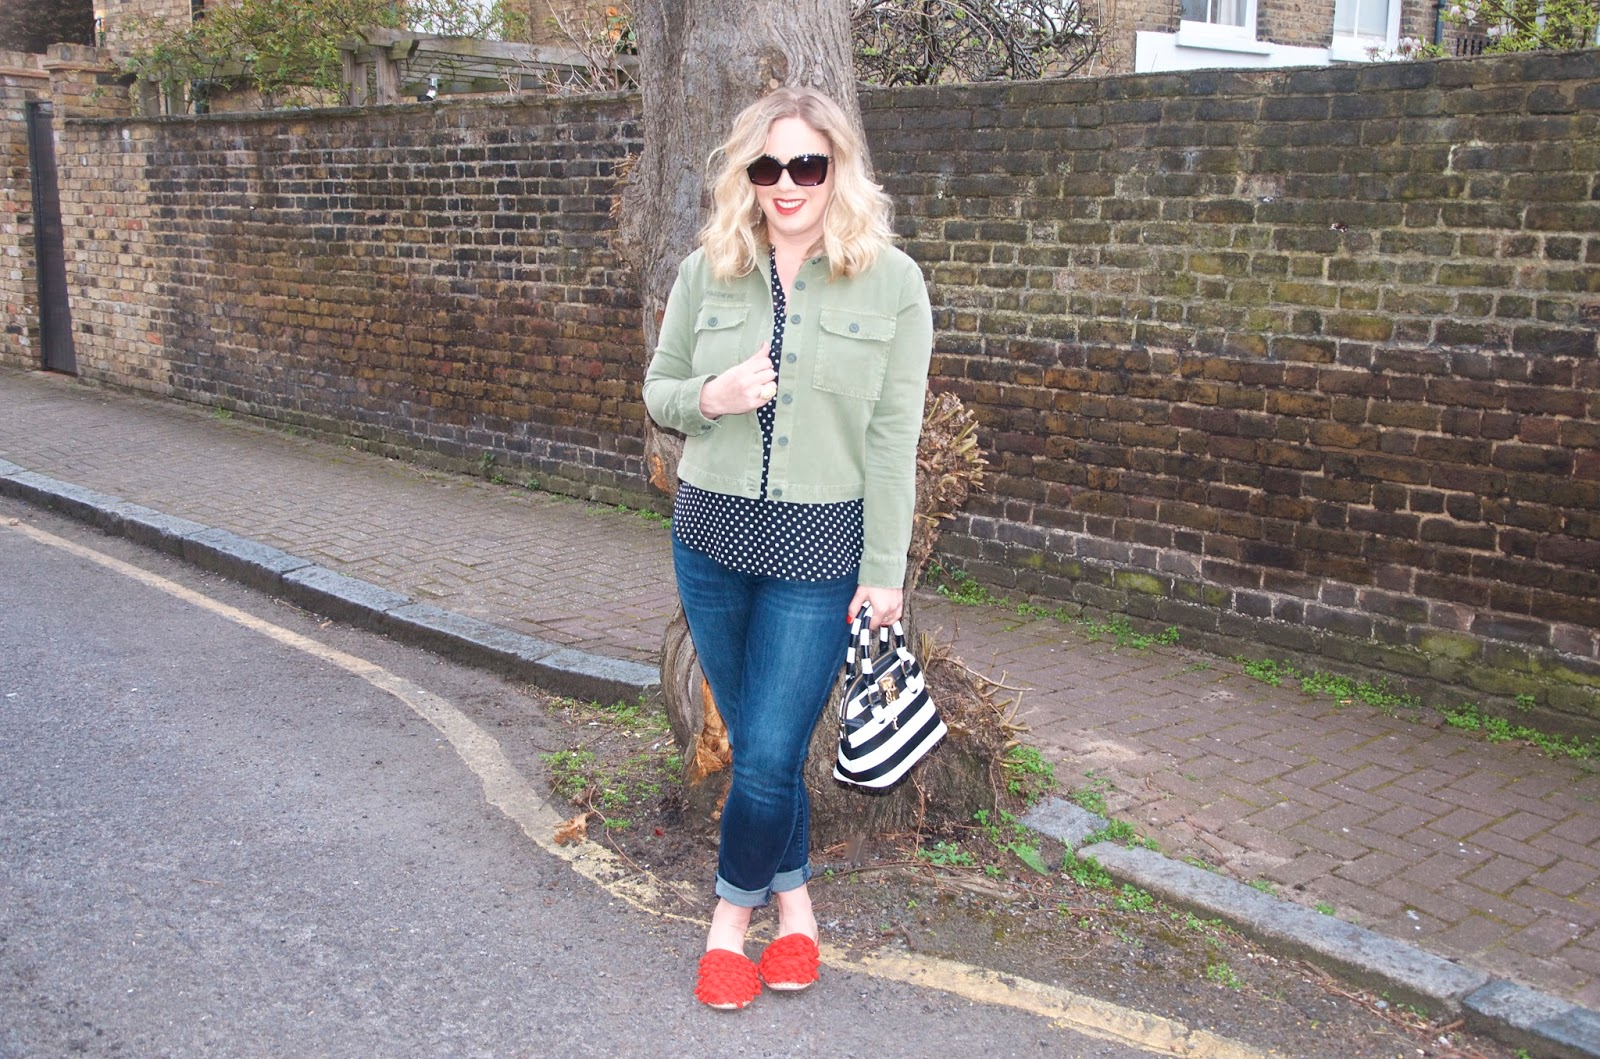 Green jacket, polka dot top, jeans, striped bag, red shoes